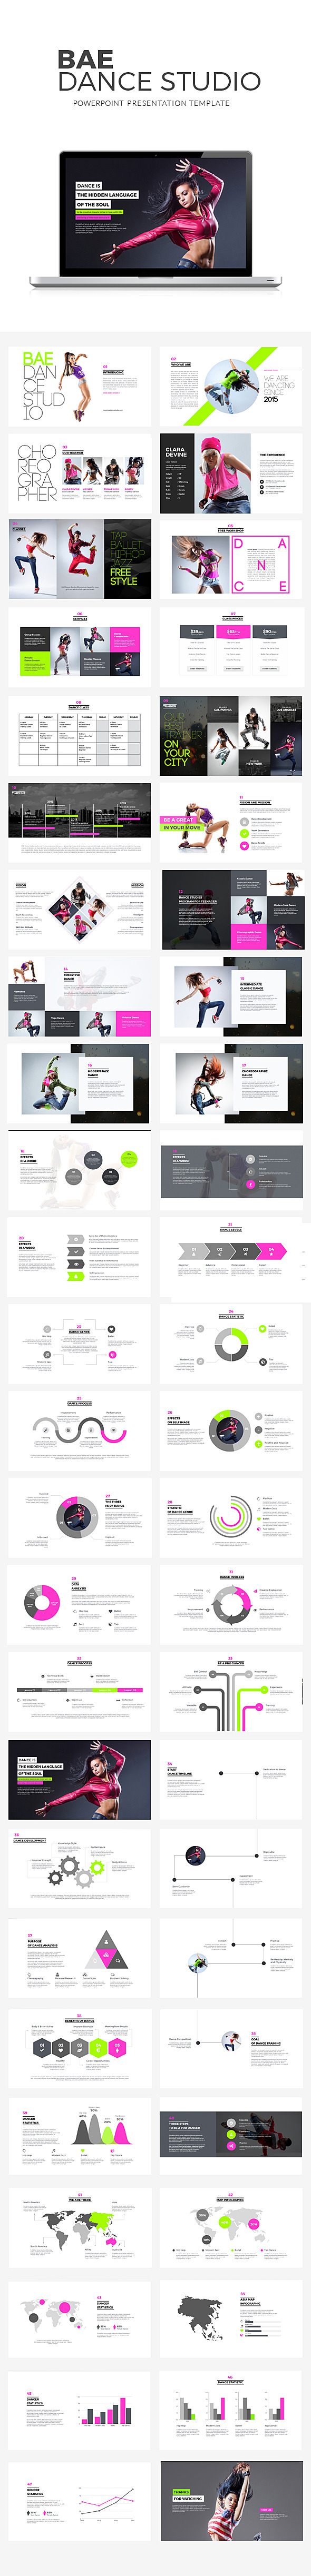 Bae Dance Powerpoint Presentation - Creative PowerPoint Templates